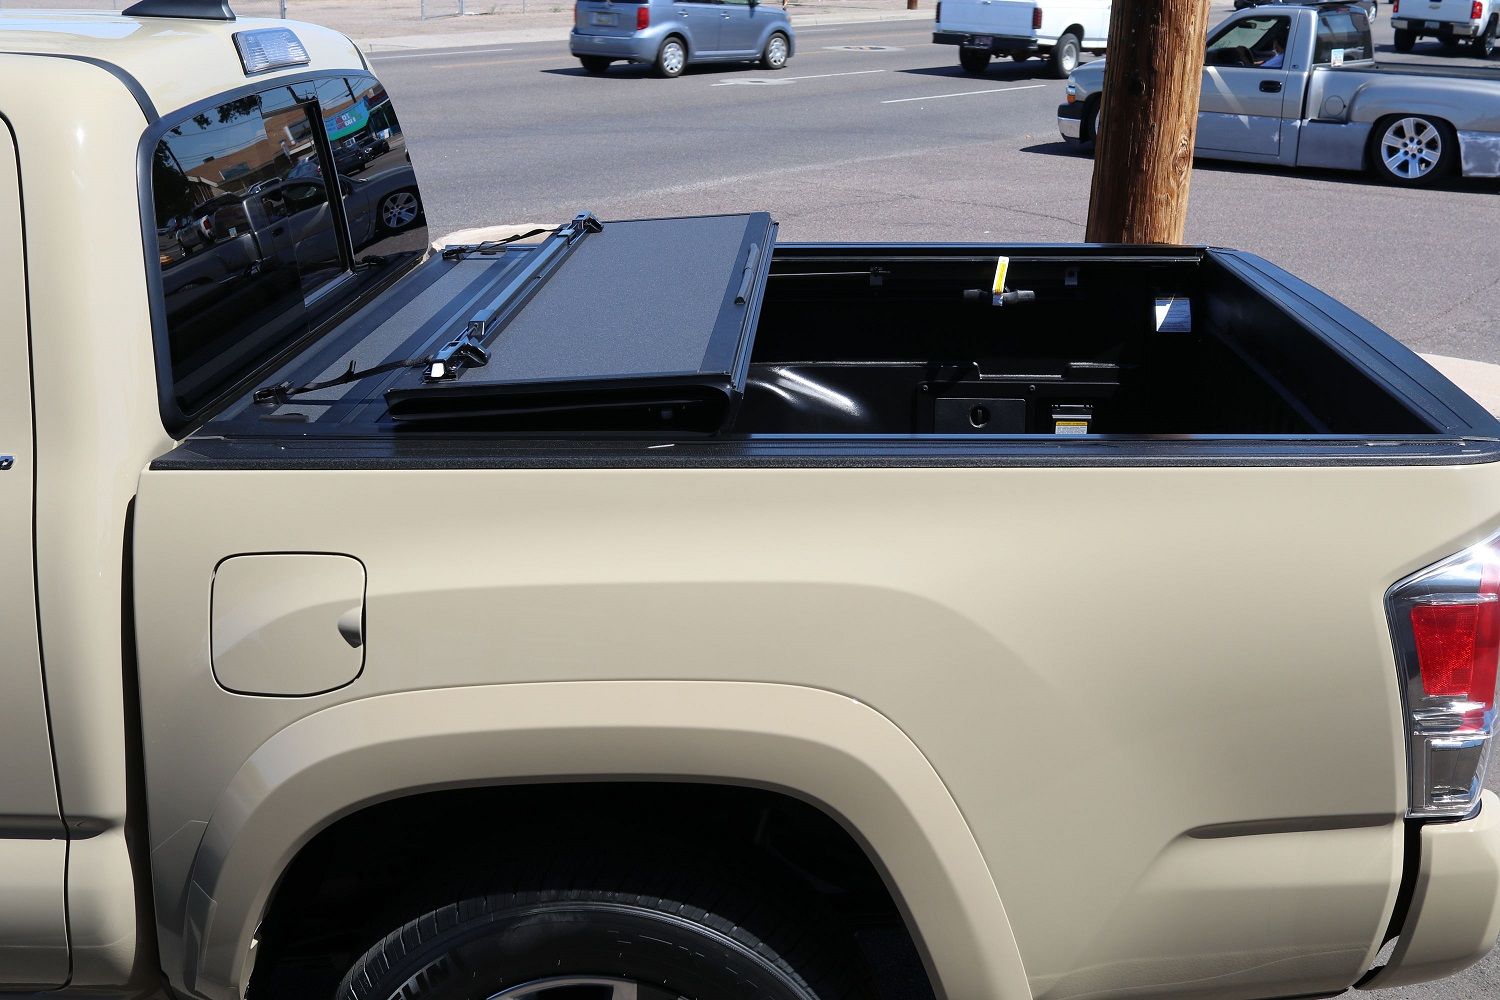 Toyota Tacoma BAKFlip MX4 hard folding truck bed cover